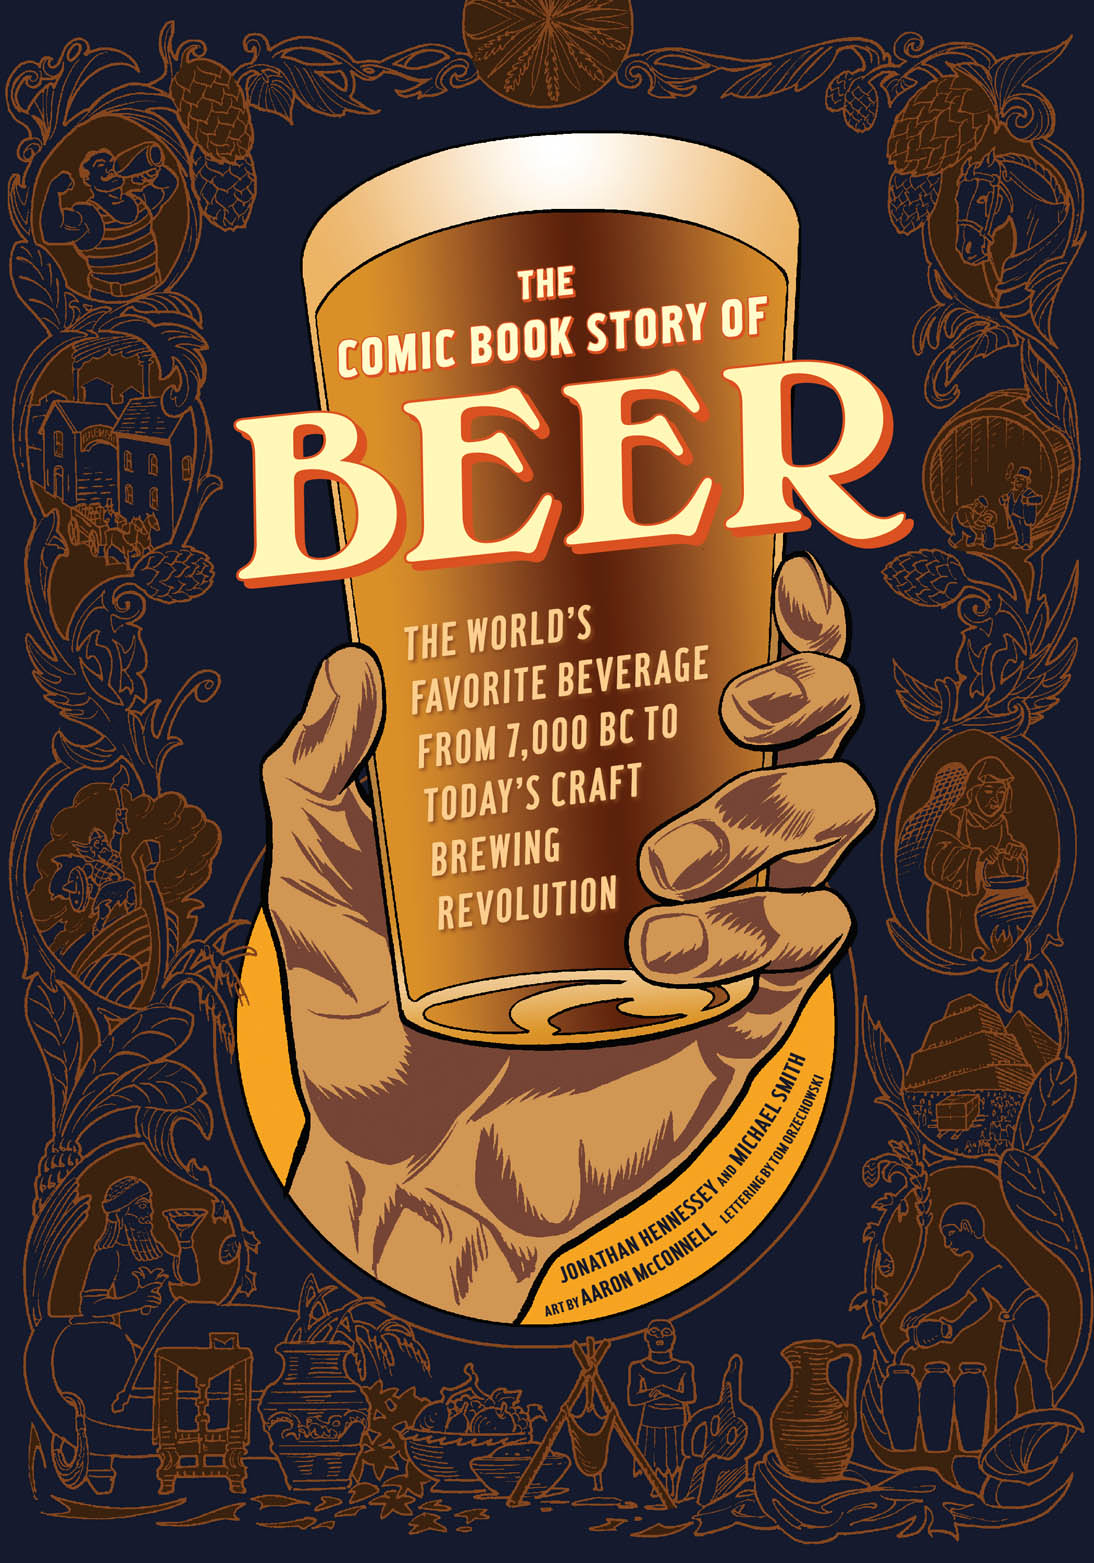 Book Cover Craft Beer ~ About the comic book story of beer